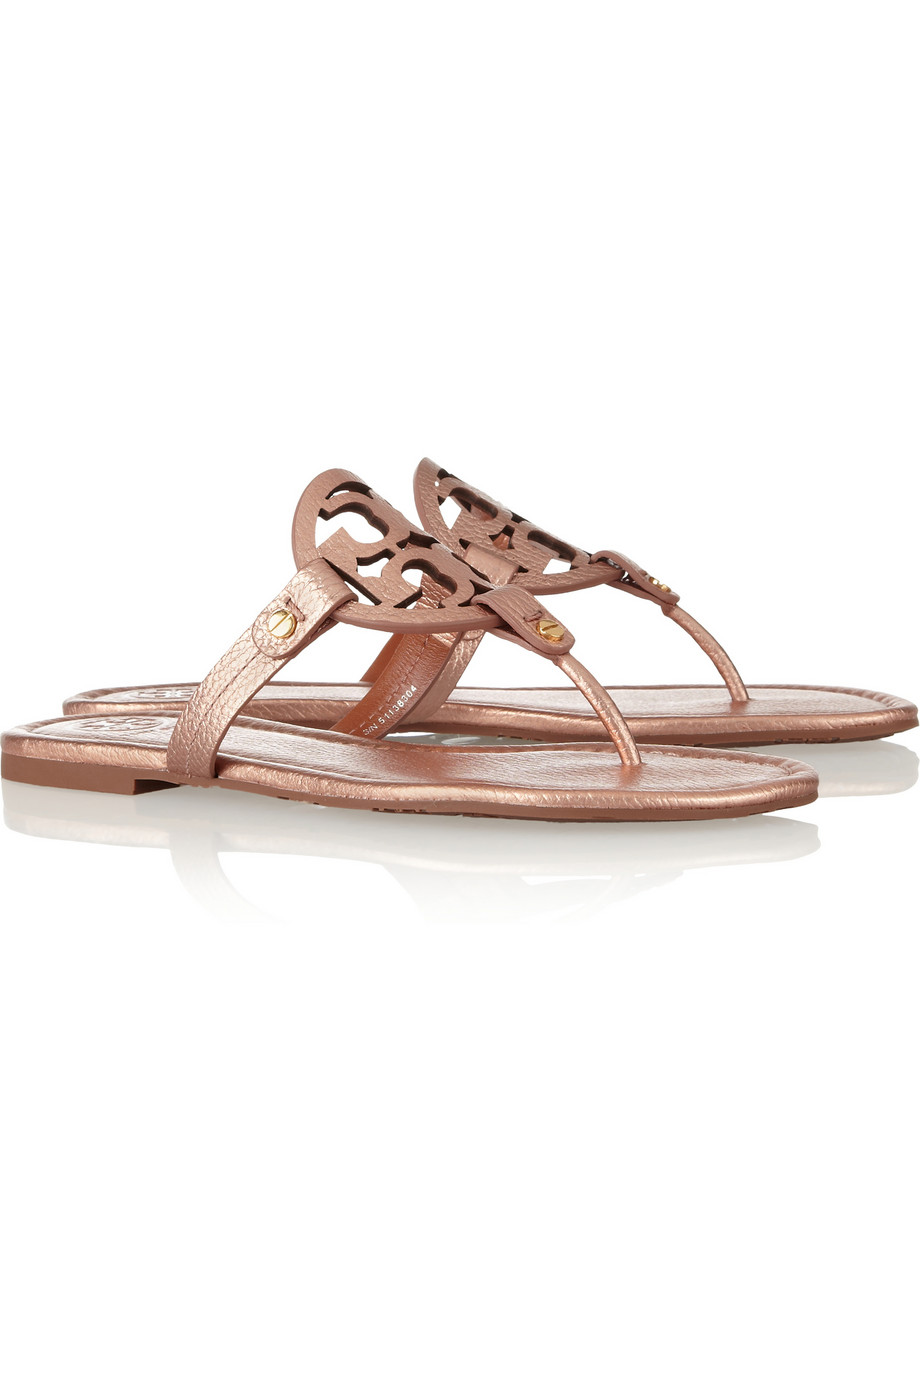 lyst tory burch miller metallic leather sandals in pink. Black Bedroom Furniture Sets. Home Design Ideas